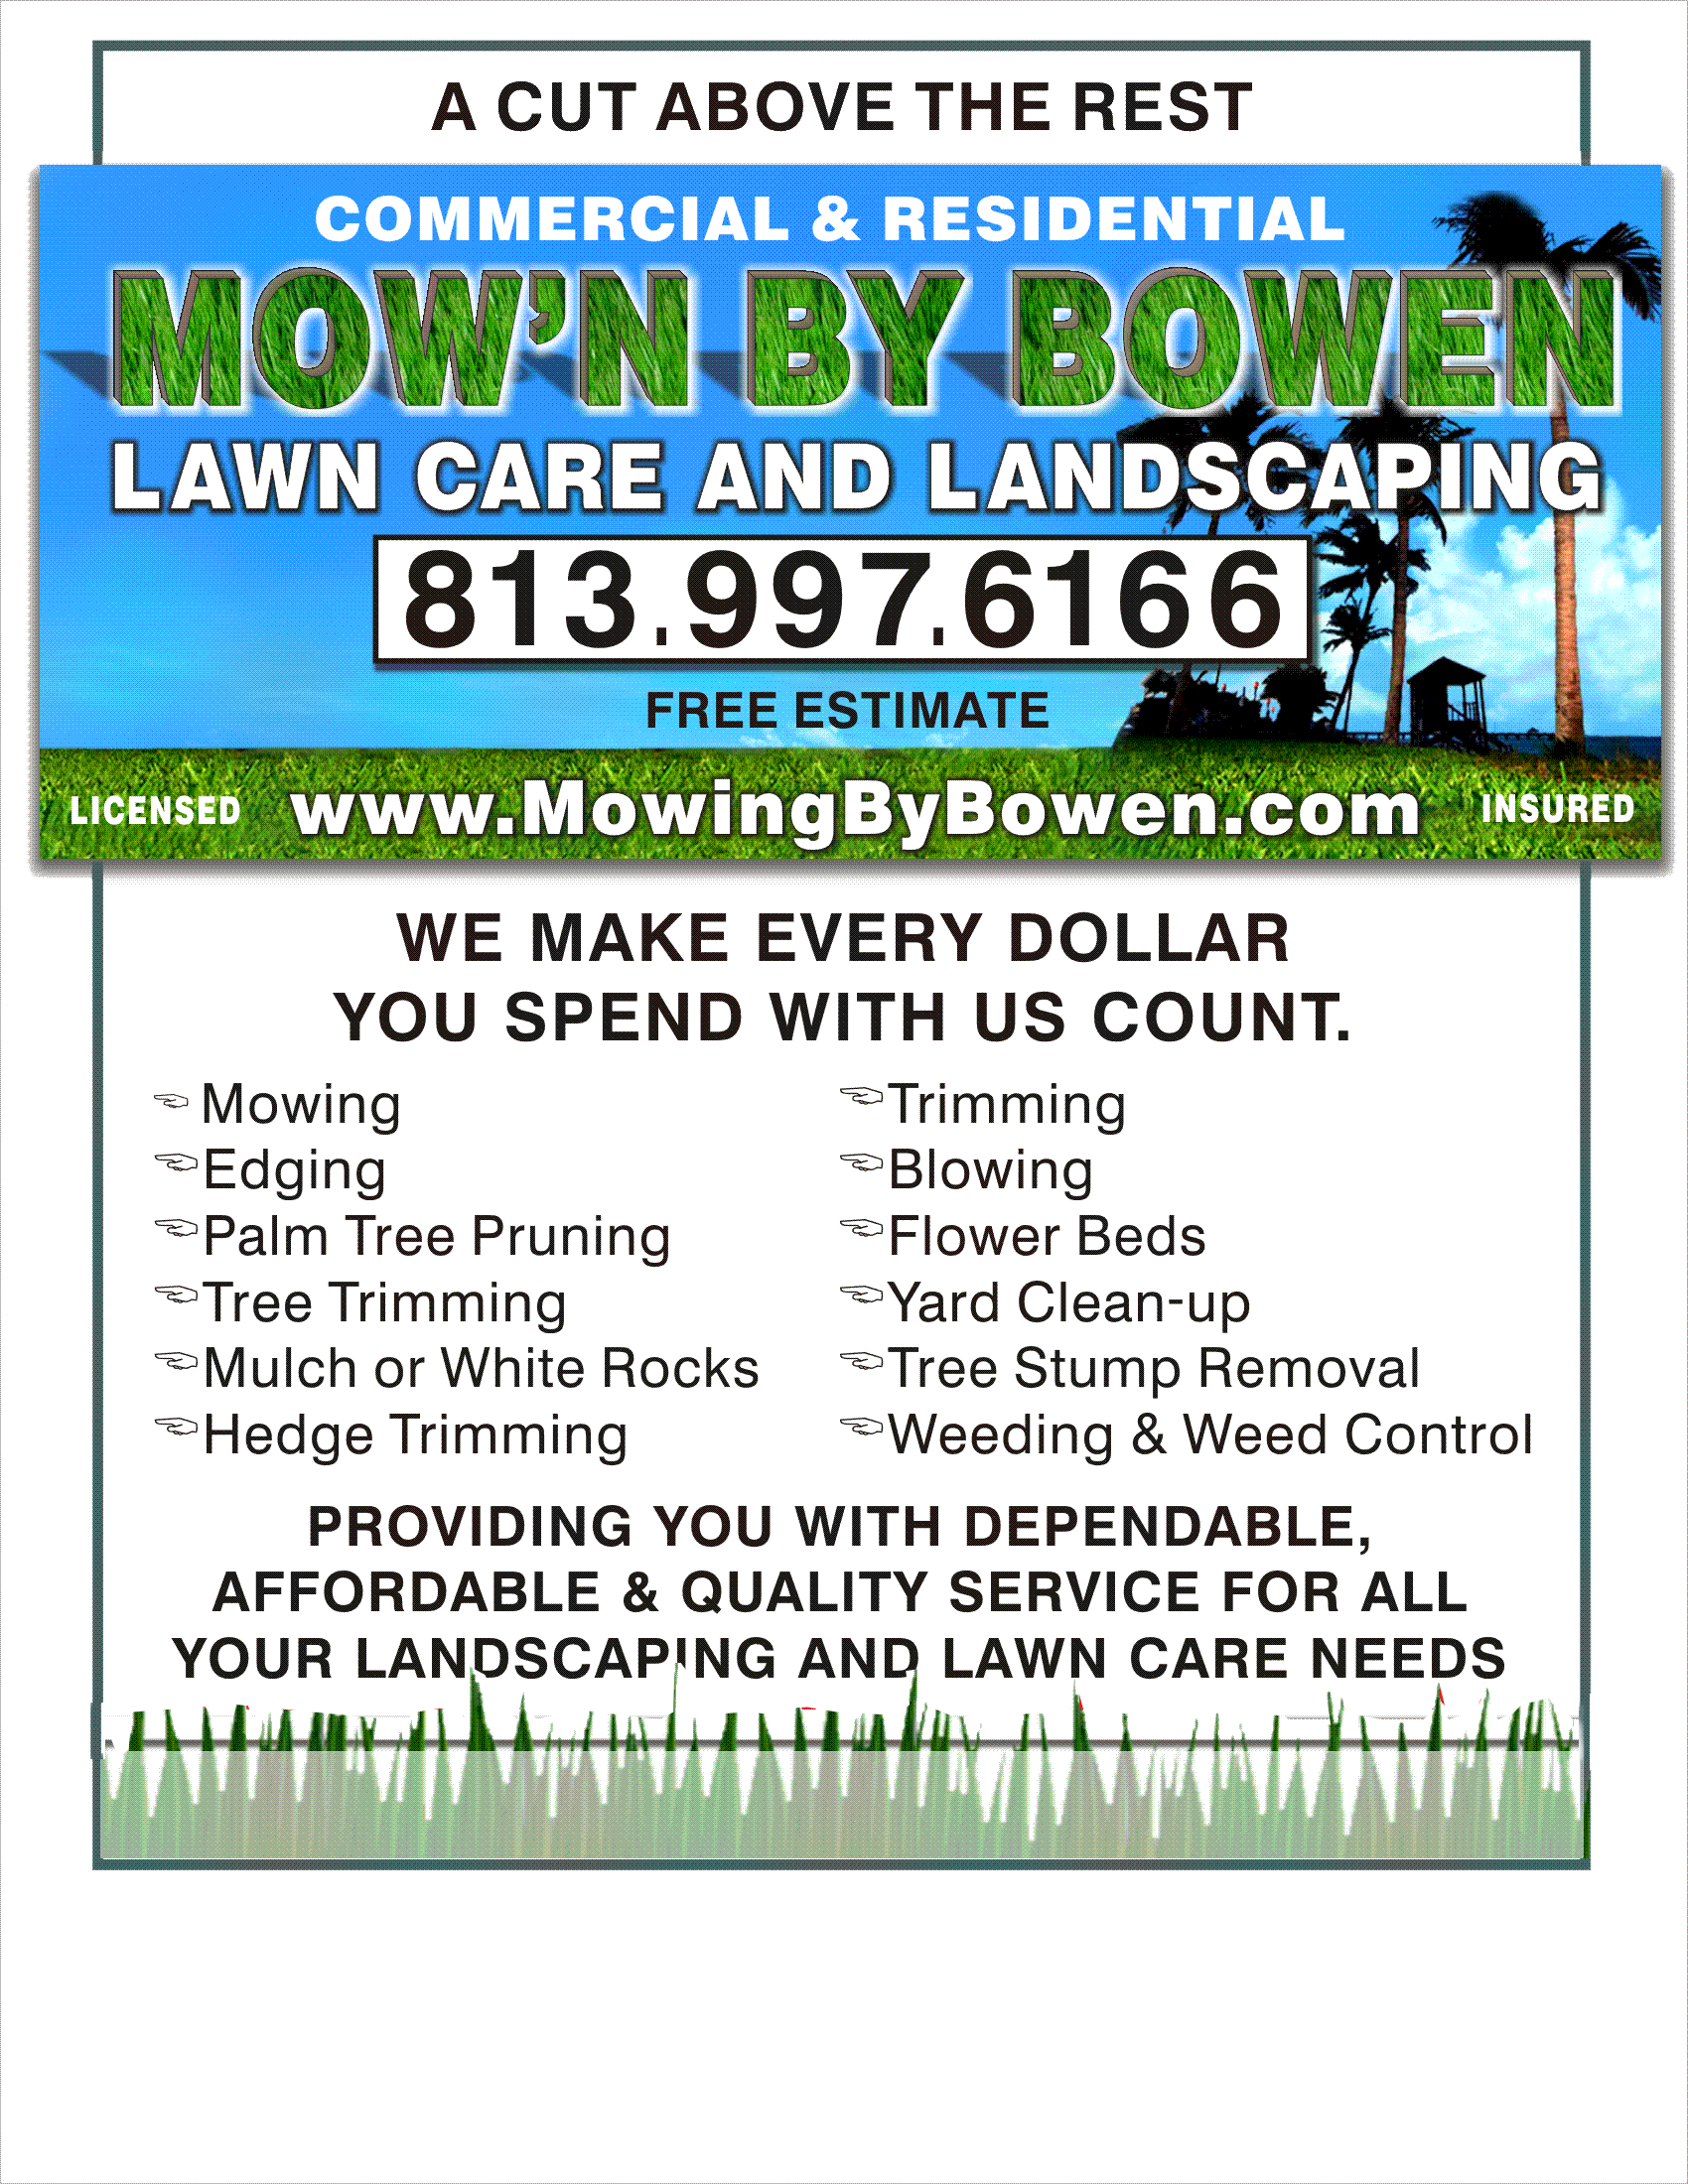 Download Lawn Care Services Flyers Png Image With No Background Pngkey Com